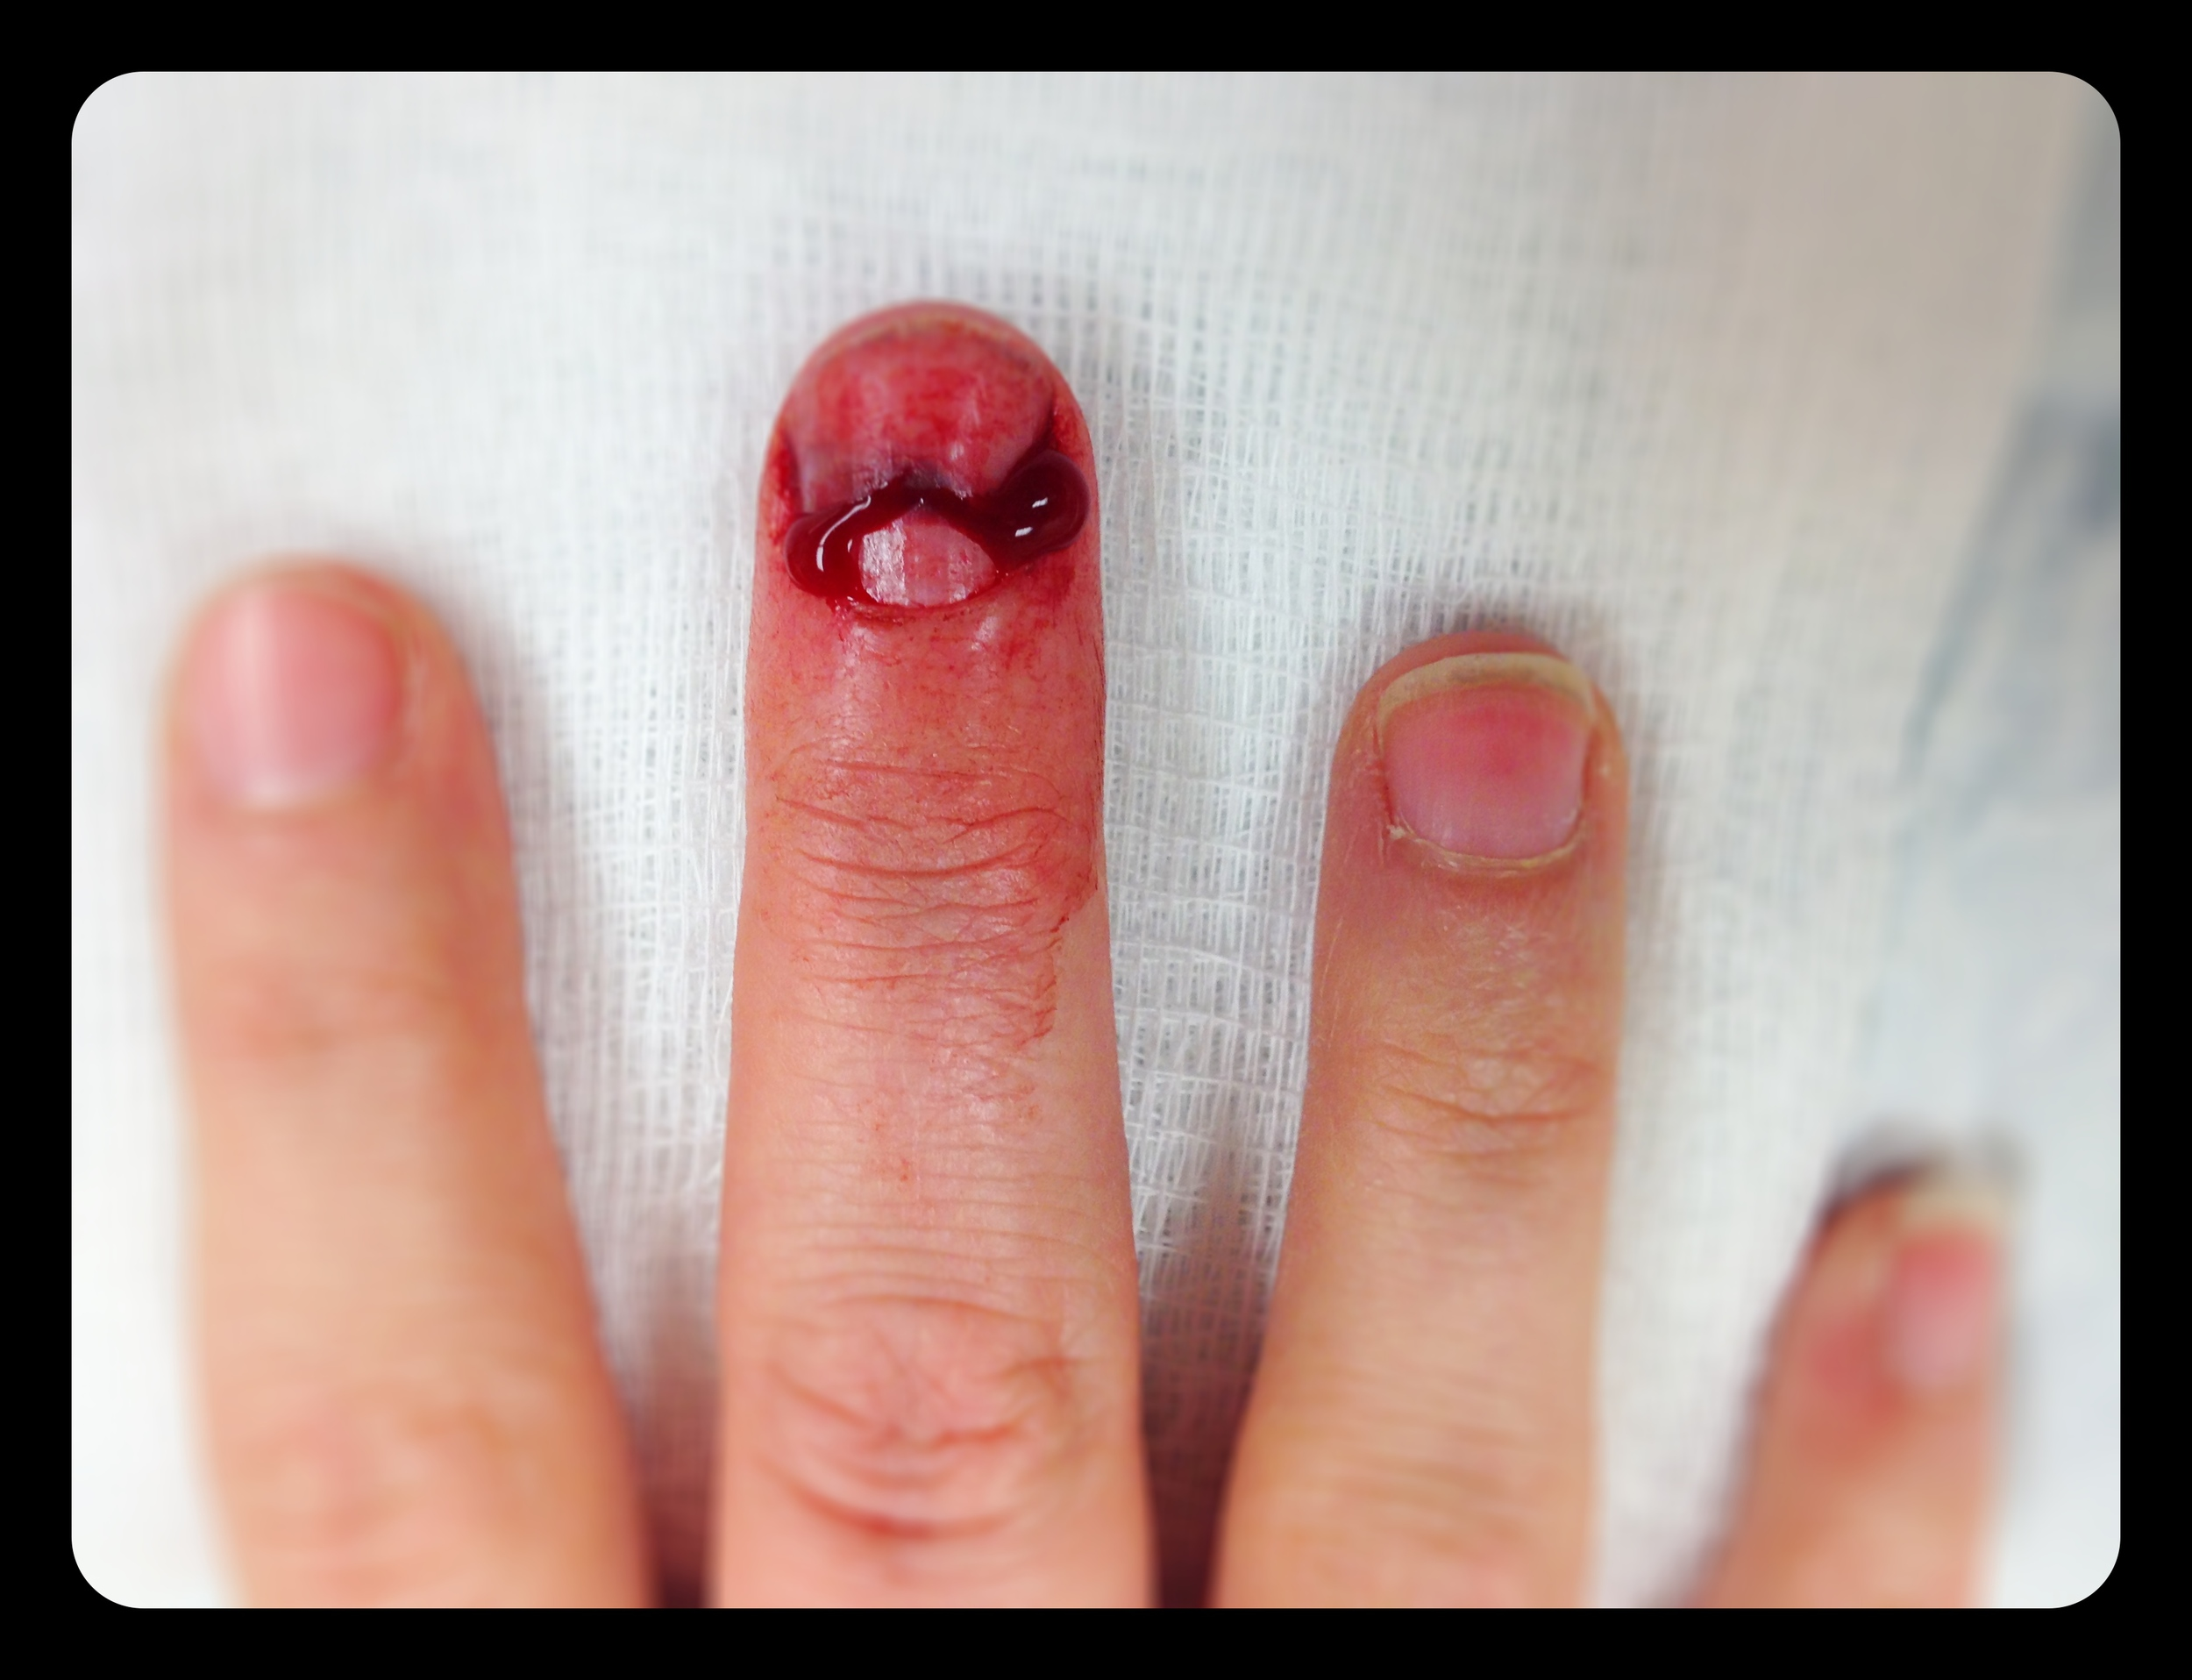 Good news and bad news. Bad = Door broke all the way through both my nail and bone. Good = Door only went through the center of finger, which means sides are still attached and will heal. Six weeks in a splint and 6 months for complete healing.